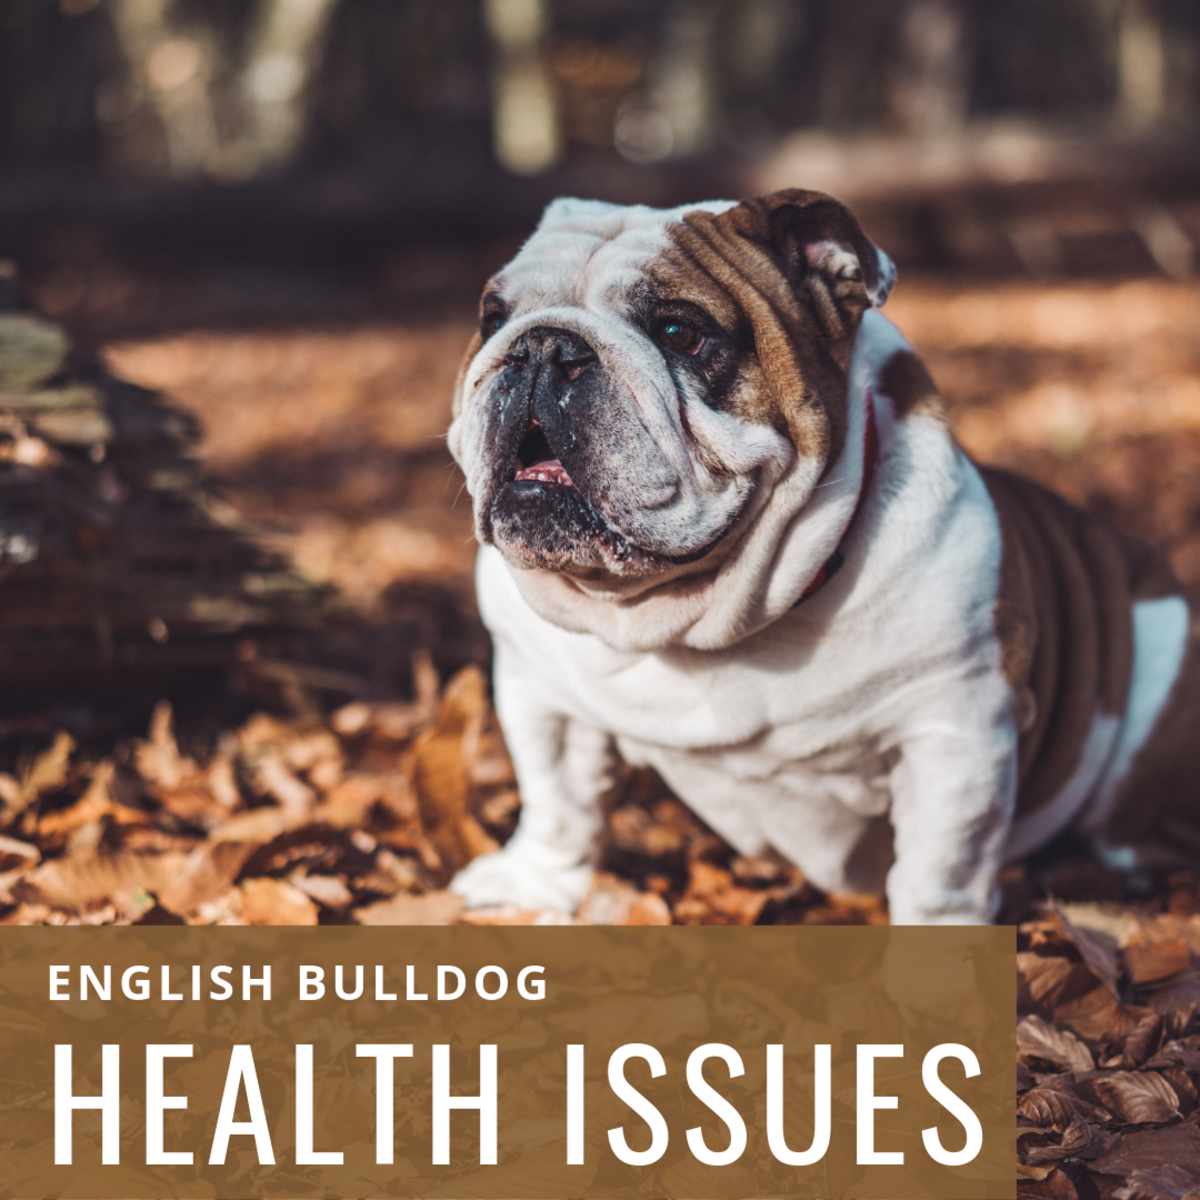 Sadly, the English Bulldog is prone to a vast array of health problems.